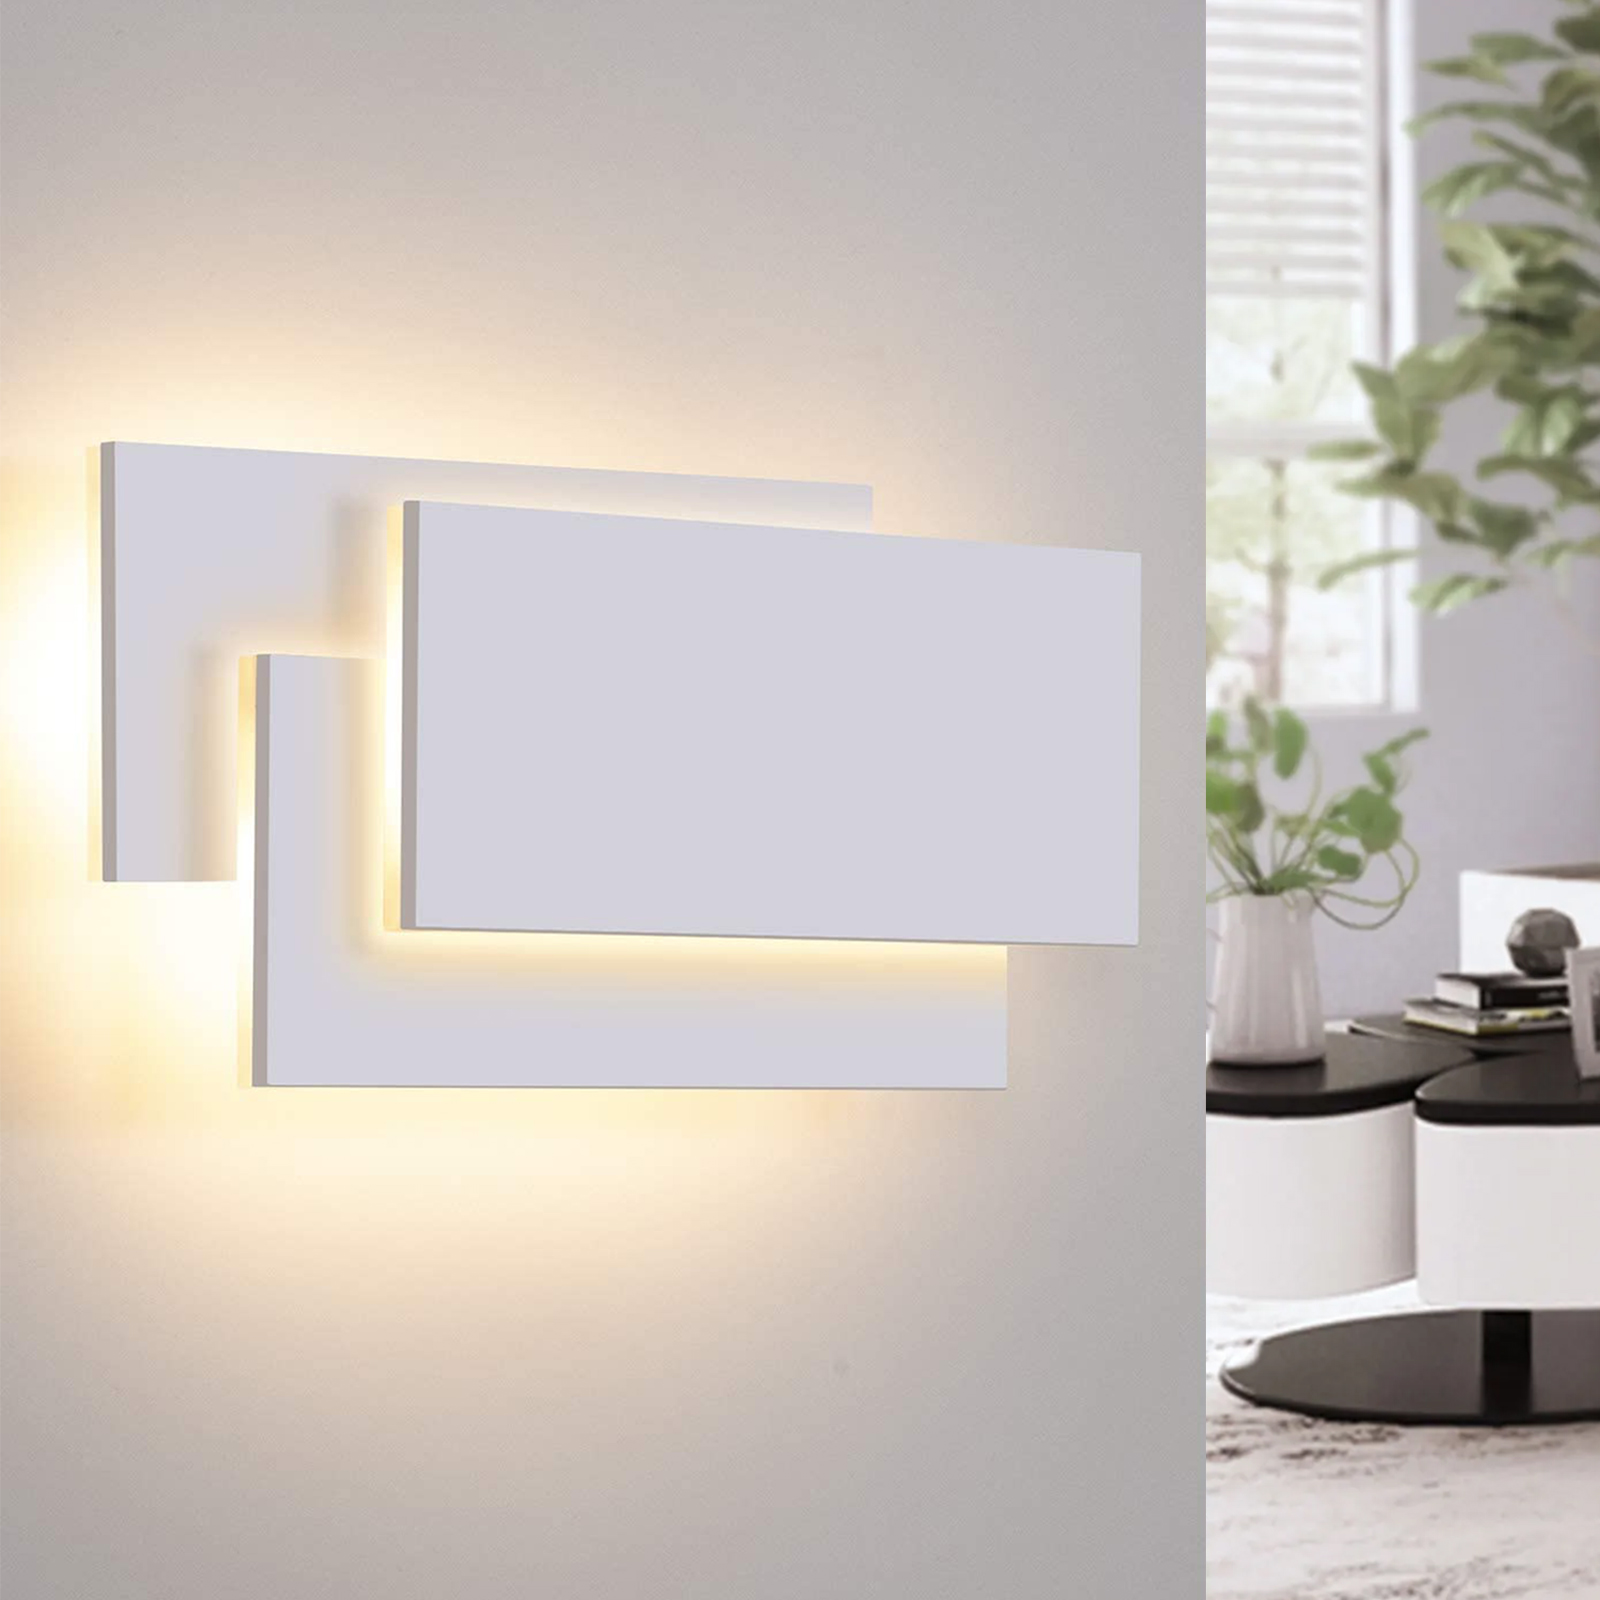 Modern rectangular LED wall light 12W wall lamp living room office 230V